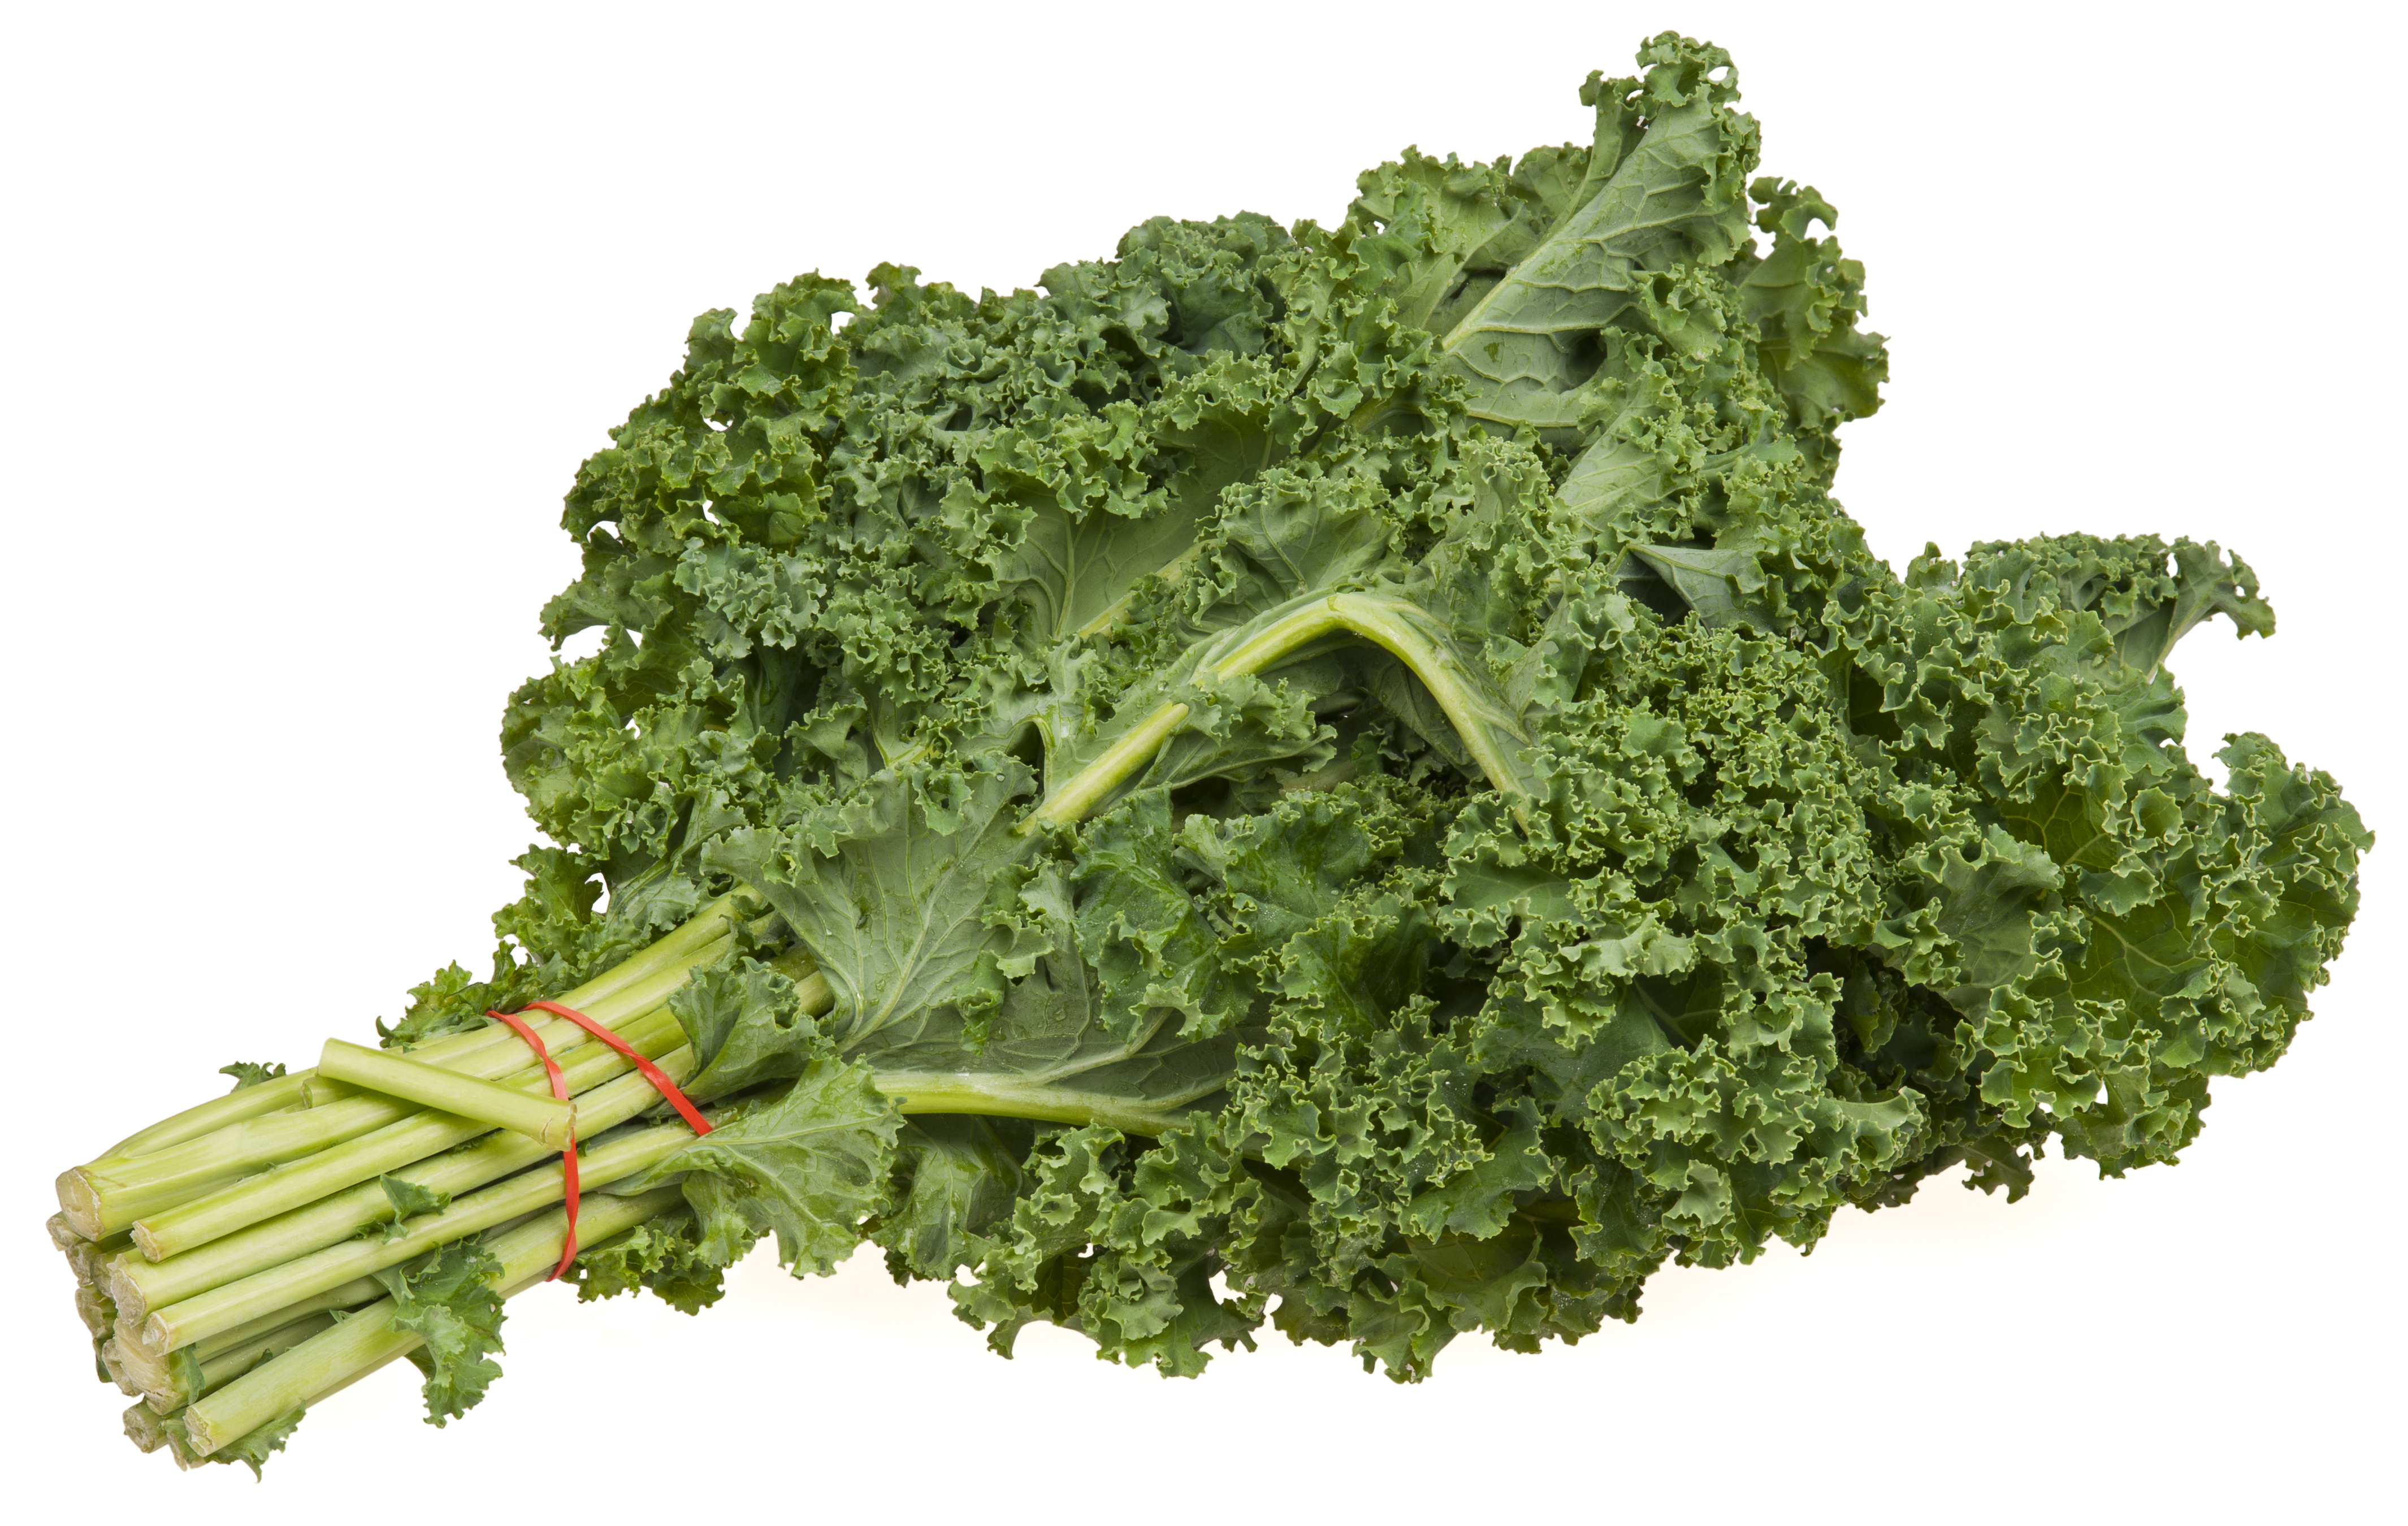 Kale Plant Based Whole Foods Diet   Myths and Misconceptions